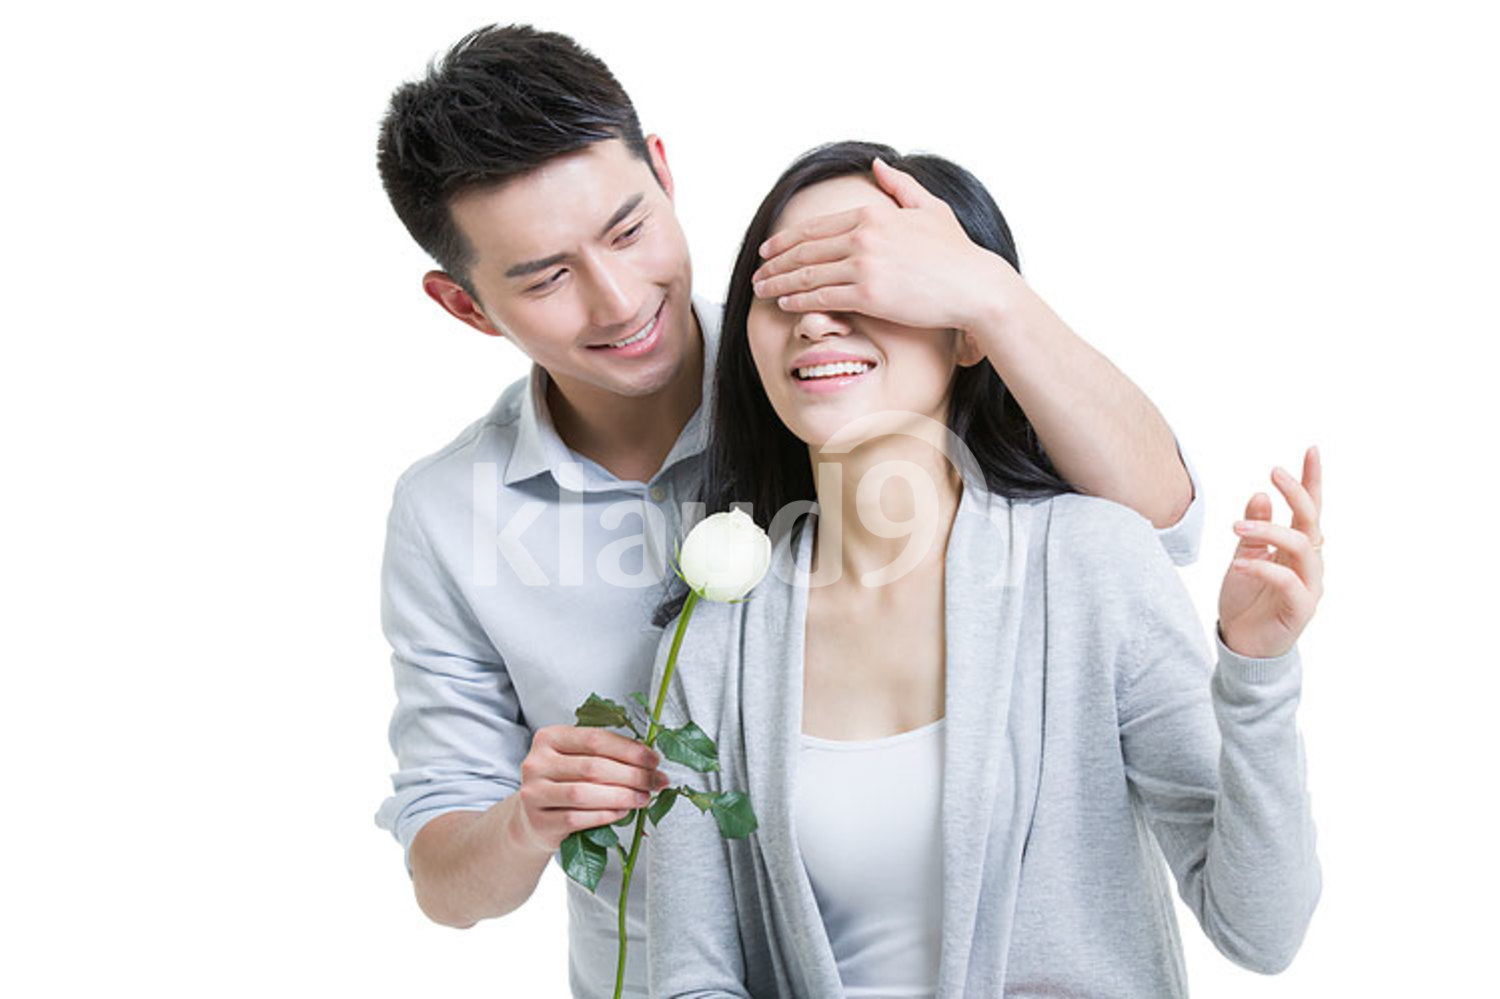 Young Chinese man surprised girlfriend with a rose